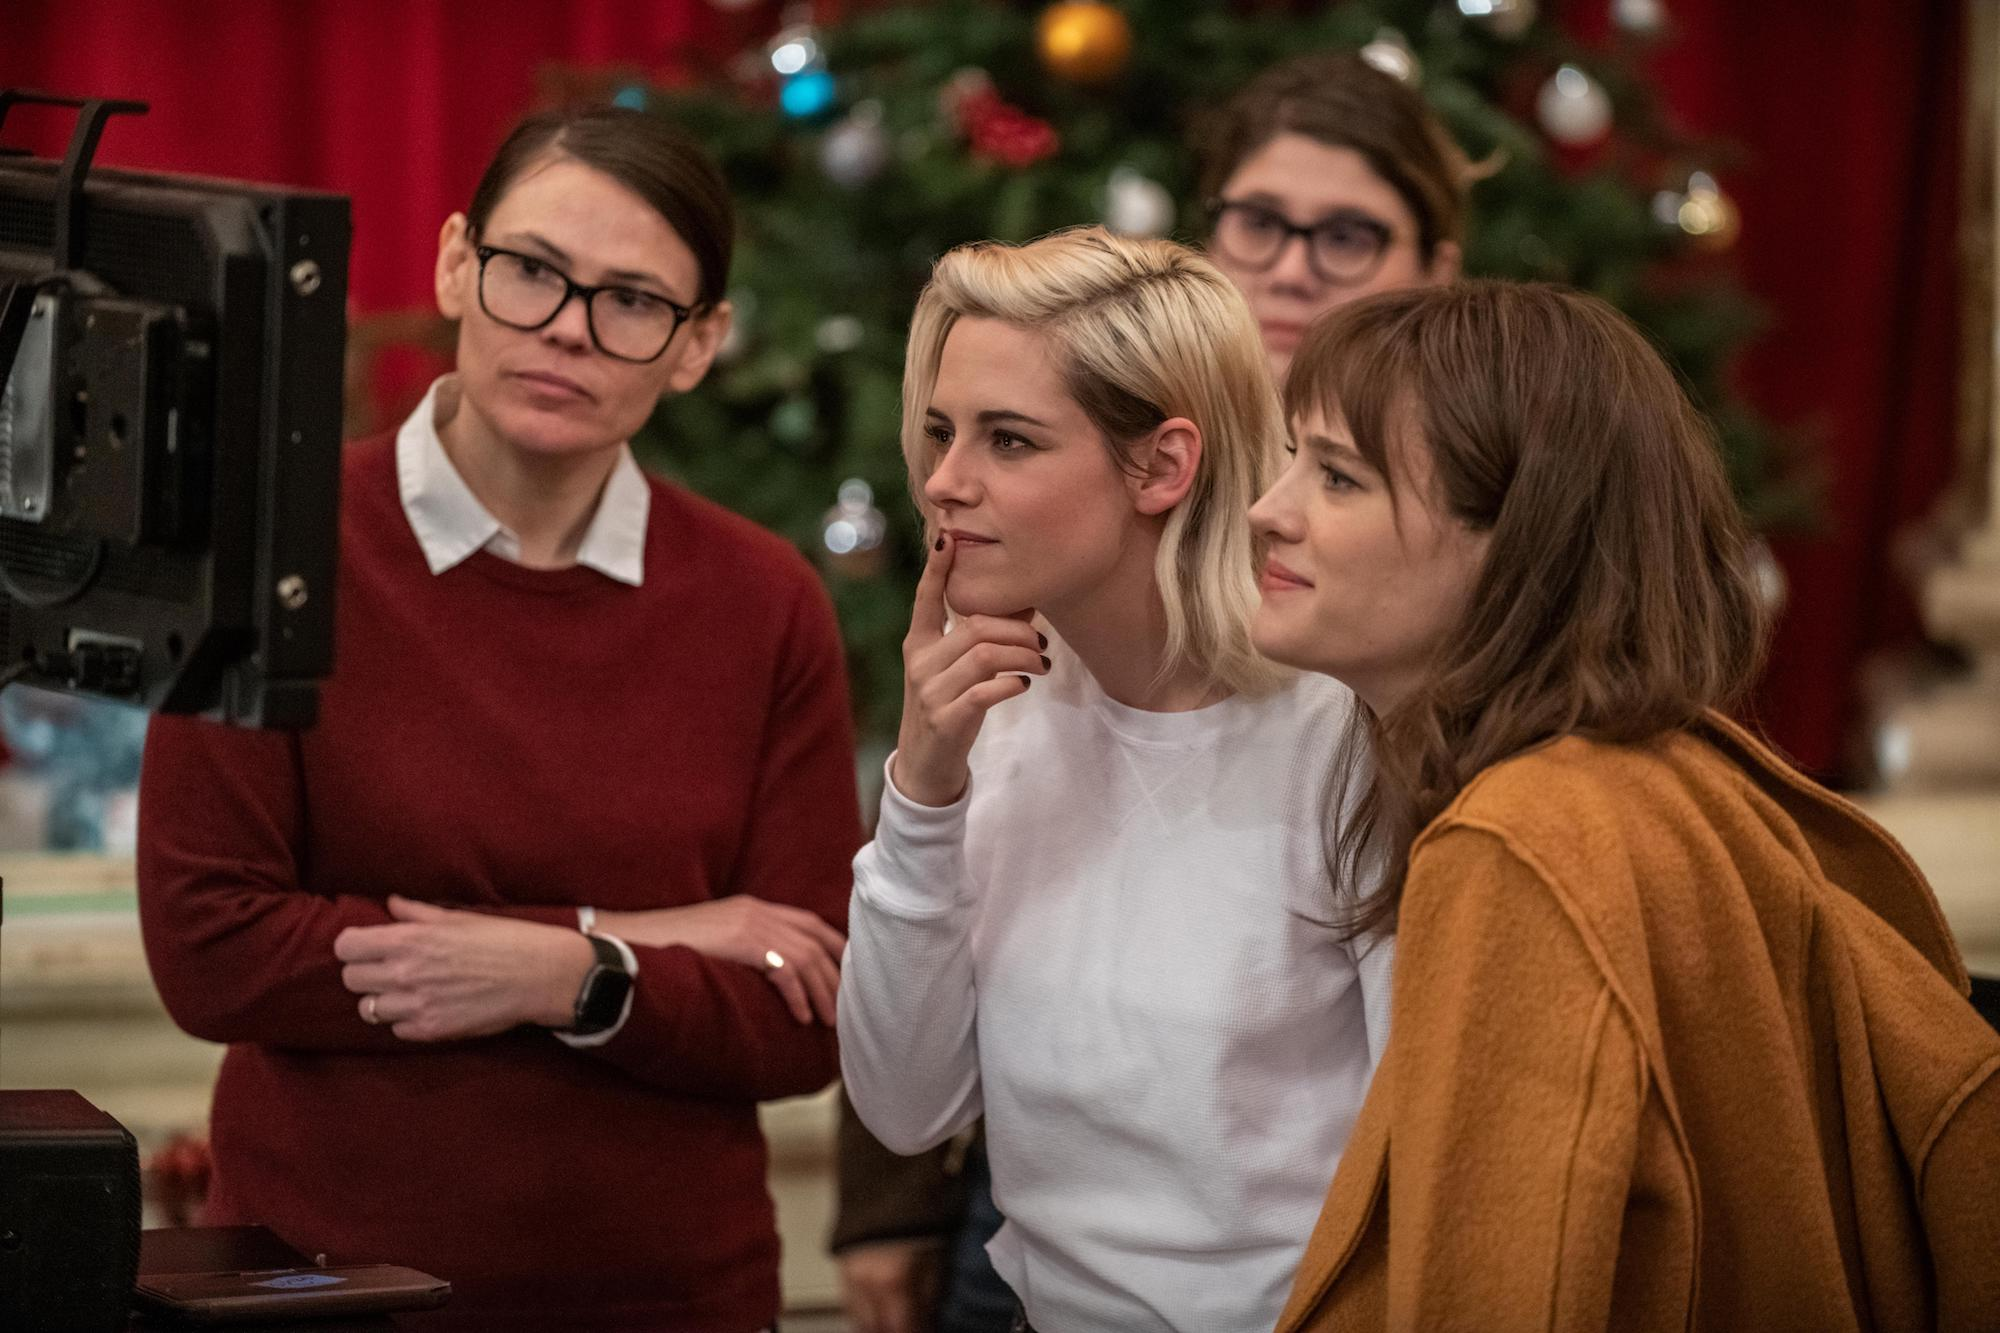 Director and writer Clea DuVall with Stewart and Davis on the set of 'Happiest Season'